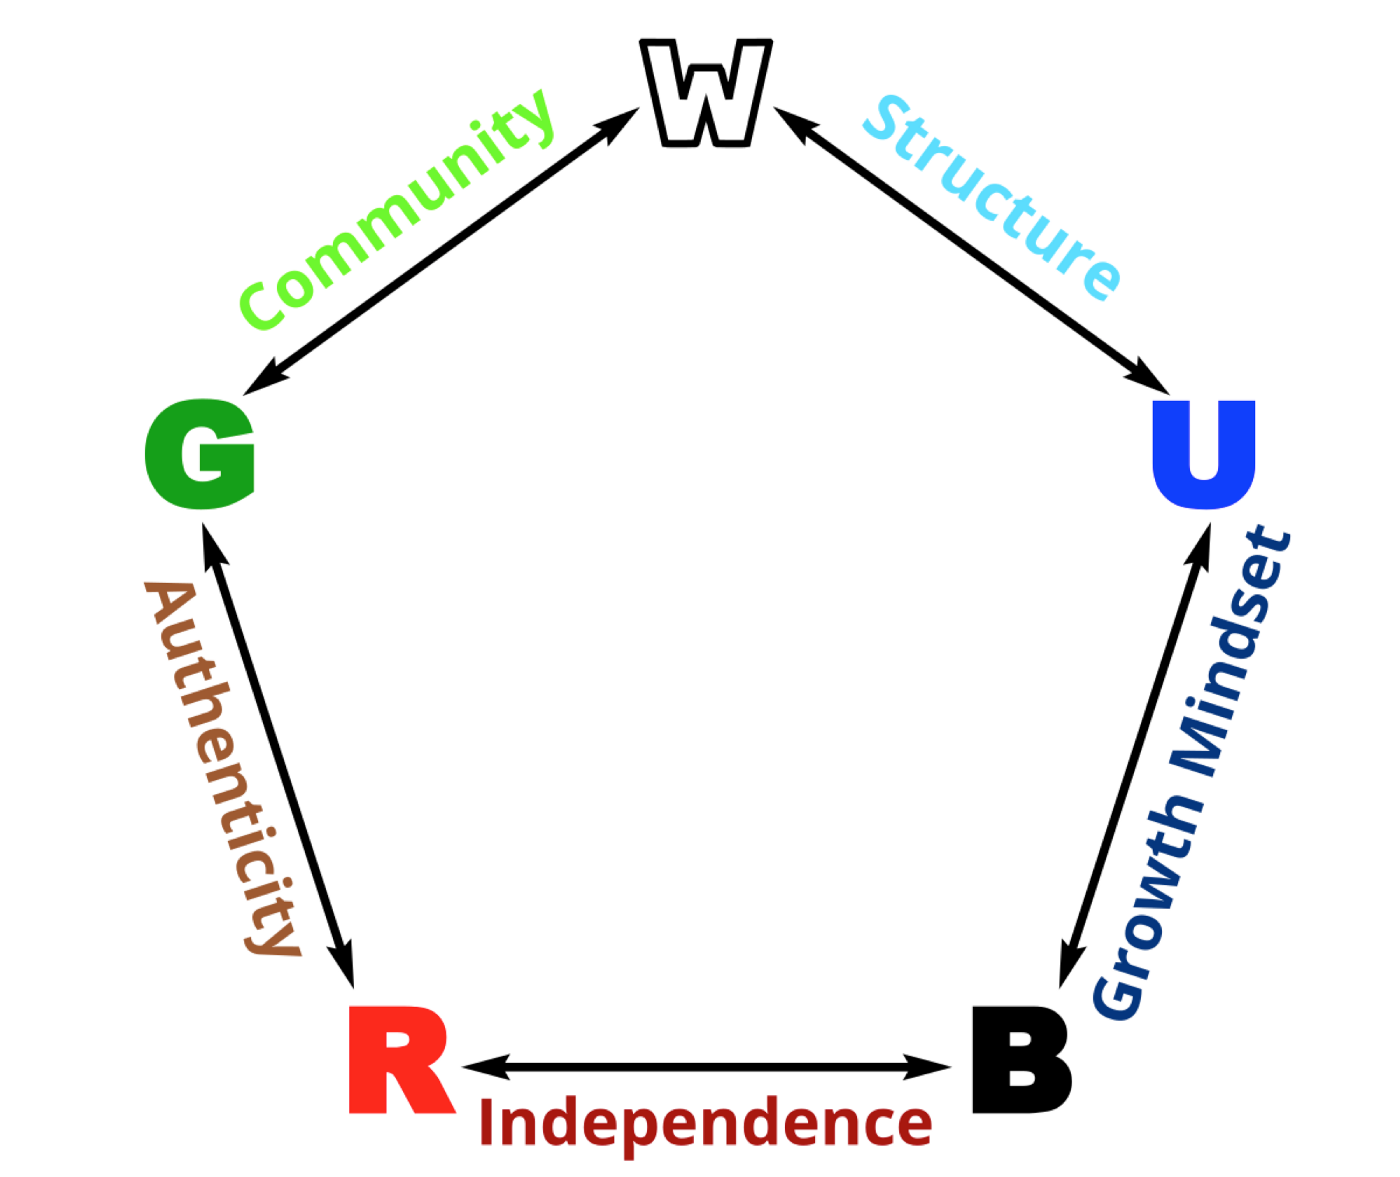 20da1b3b535 White and blue are the enemies of red, which they see as unfettered and  chaotic. White and blue both agree that structure is important — white  because it ...